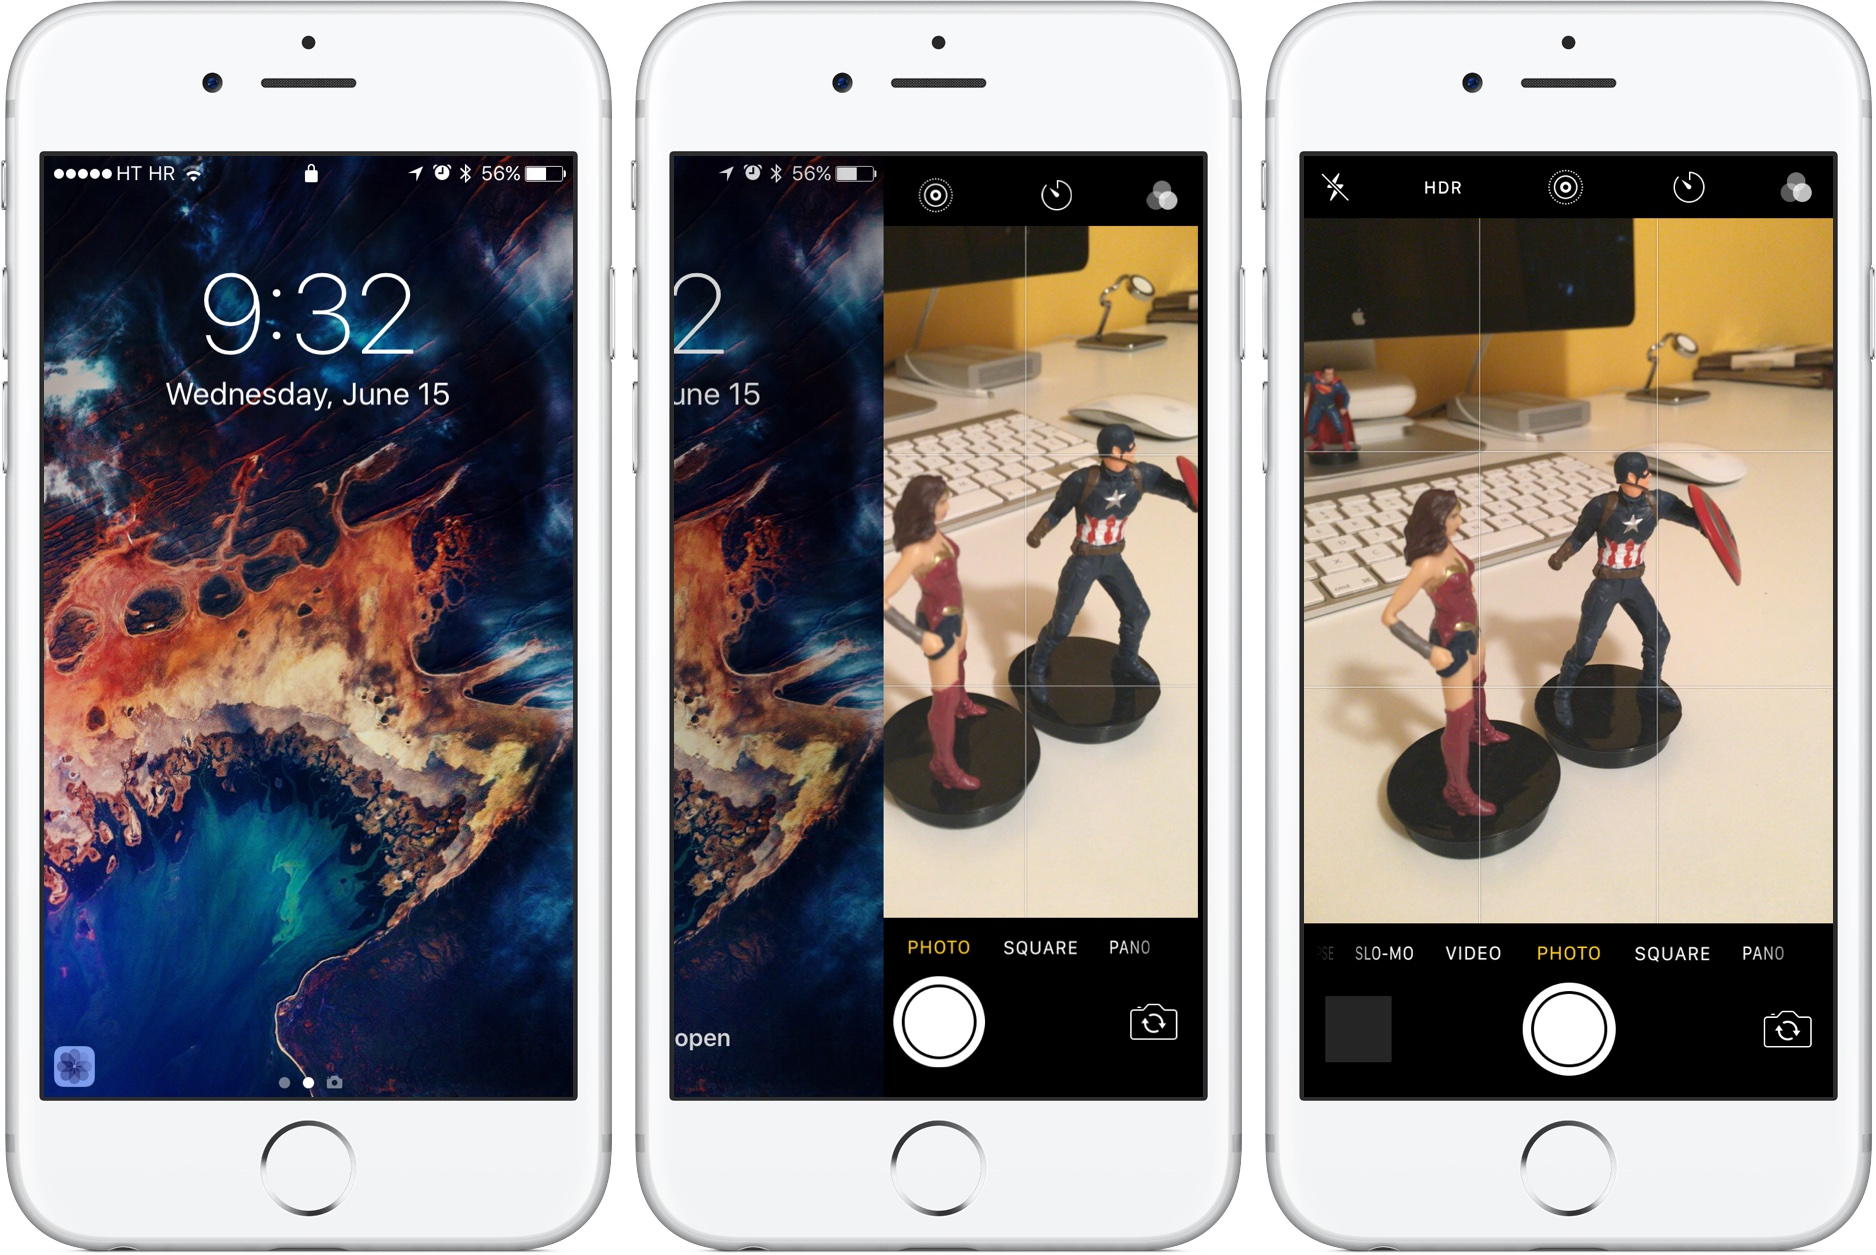 IOS 10 Preview: Your New Lock Screen With Raise To Wake